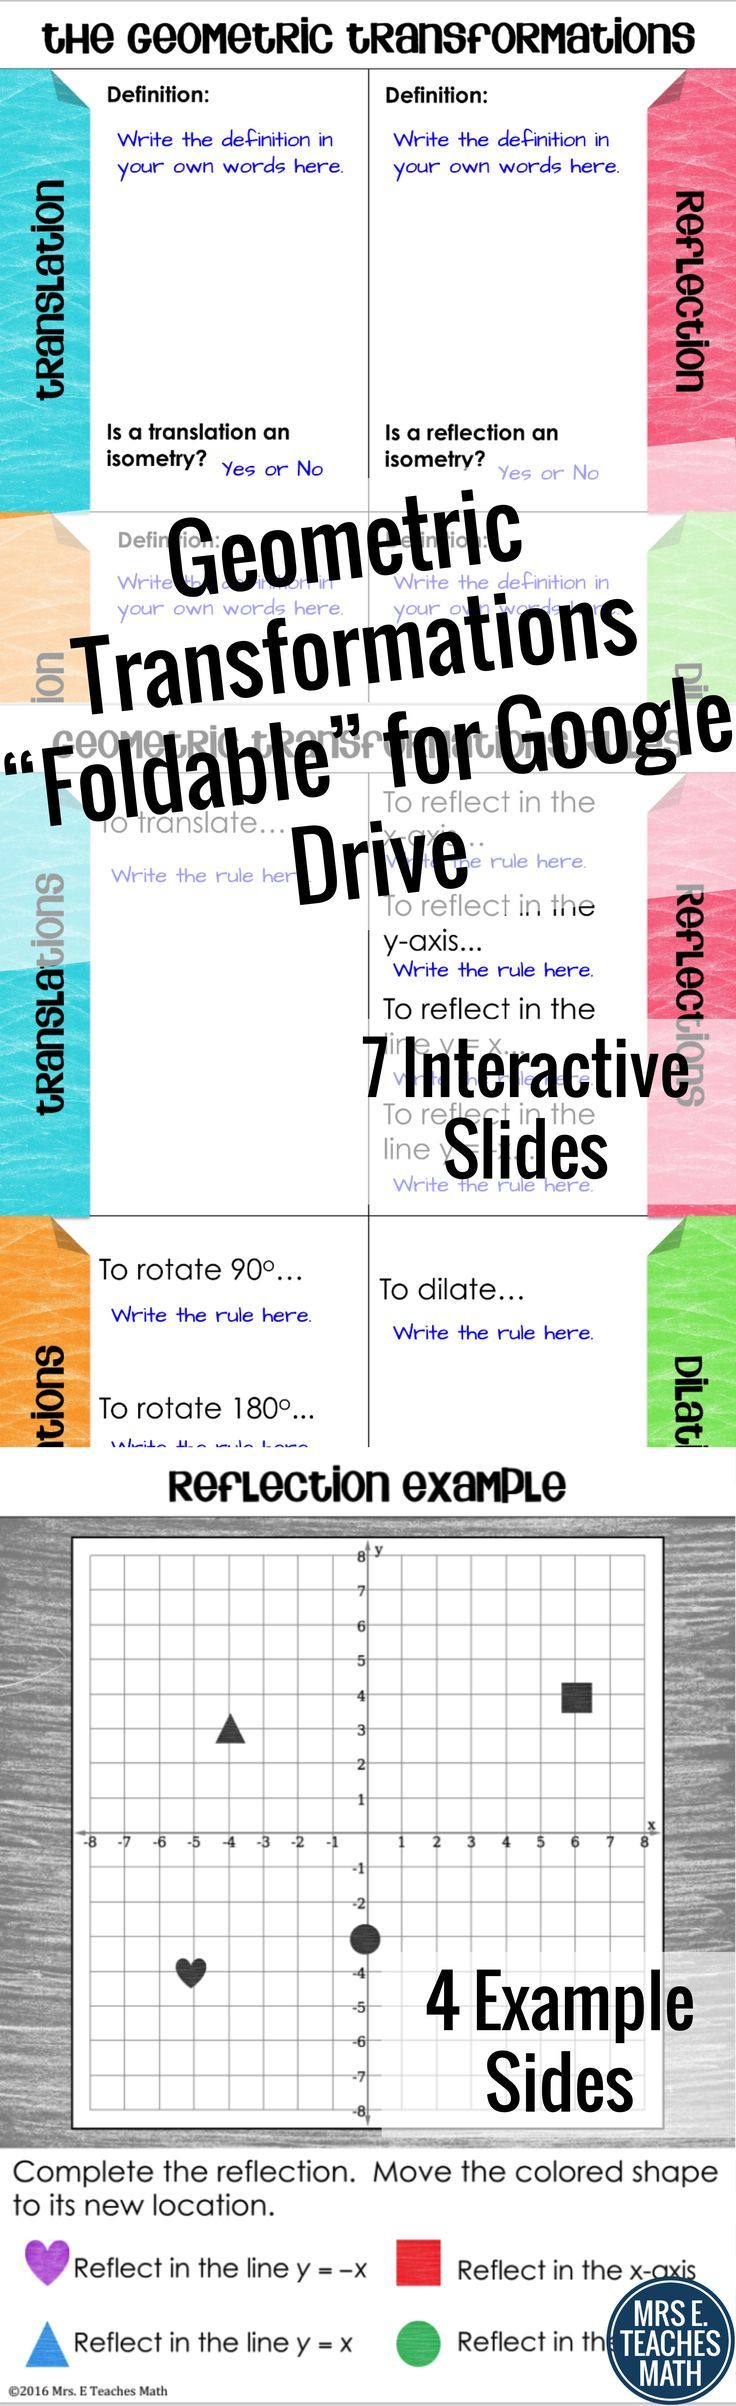 Geometric Transformations Foldable Activity for Google Drive - 7 interactive slides for students to create their own definitions and practice examples - for high school geometry